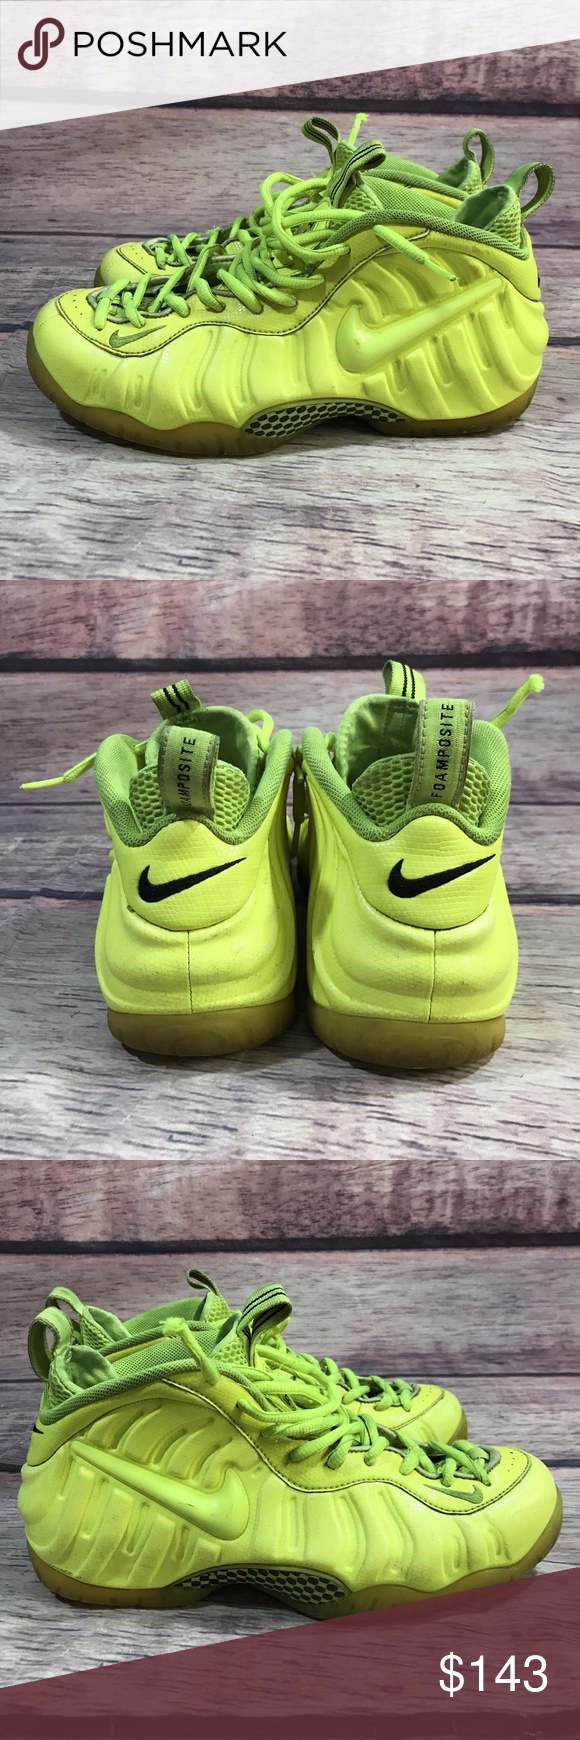 "buy popular 9a2f4 0d96b Nike Mens Tennis Ball Athletic Shoes Yellow Sz 10 Nike Air FOAMPOSITE PRO "" Volt"" Tennis Ball Neon Yellow 624041 700 Men s Sz 10 Condition  Pre-owned  Product ..."